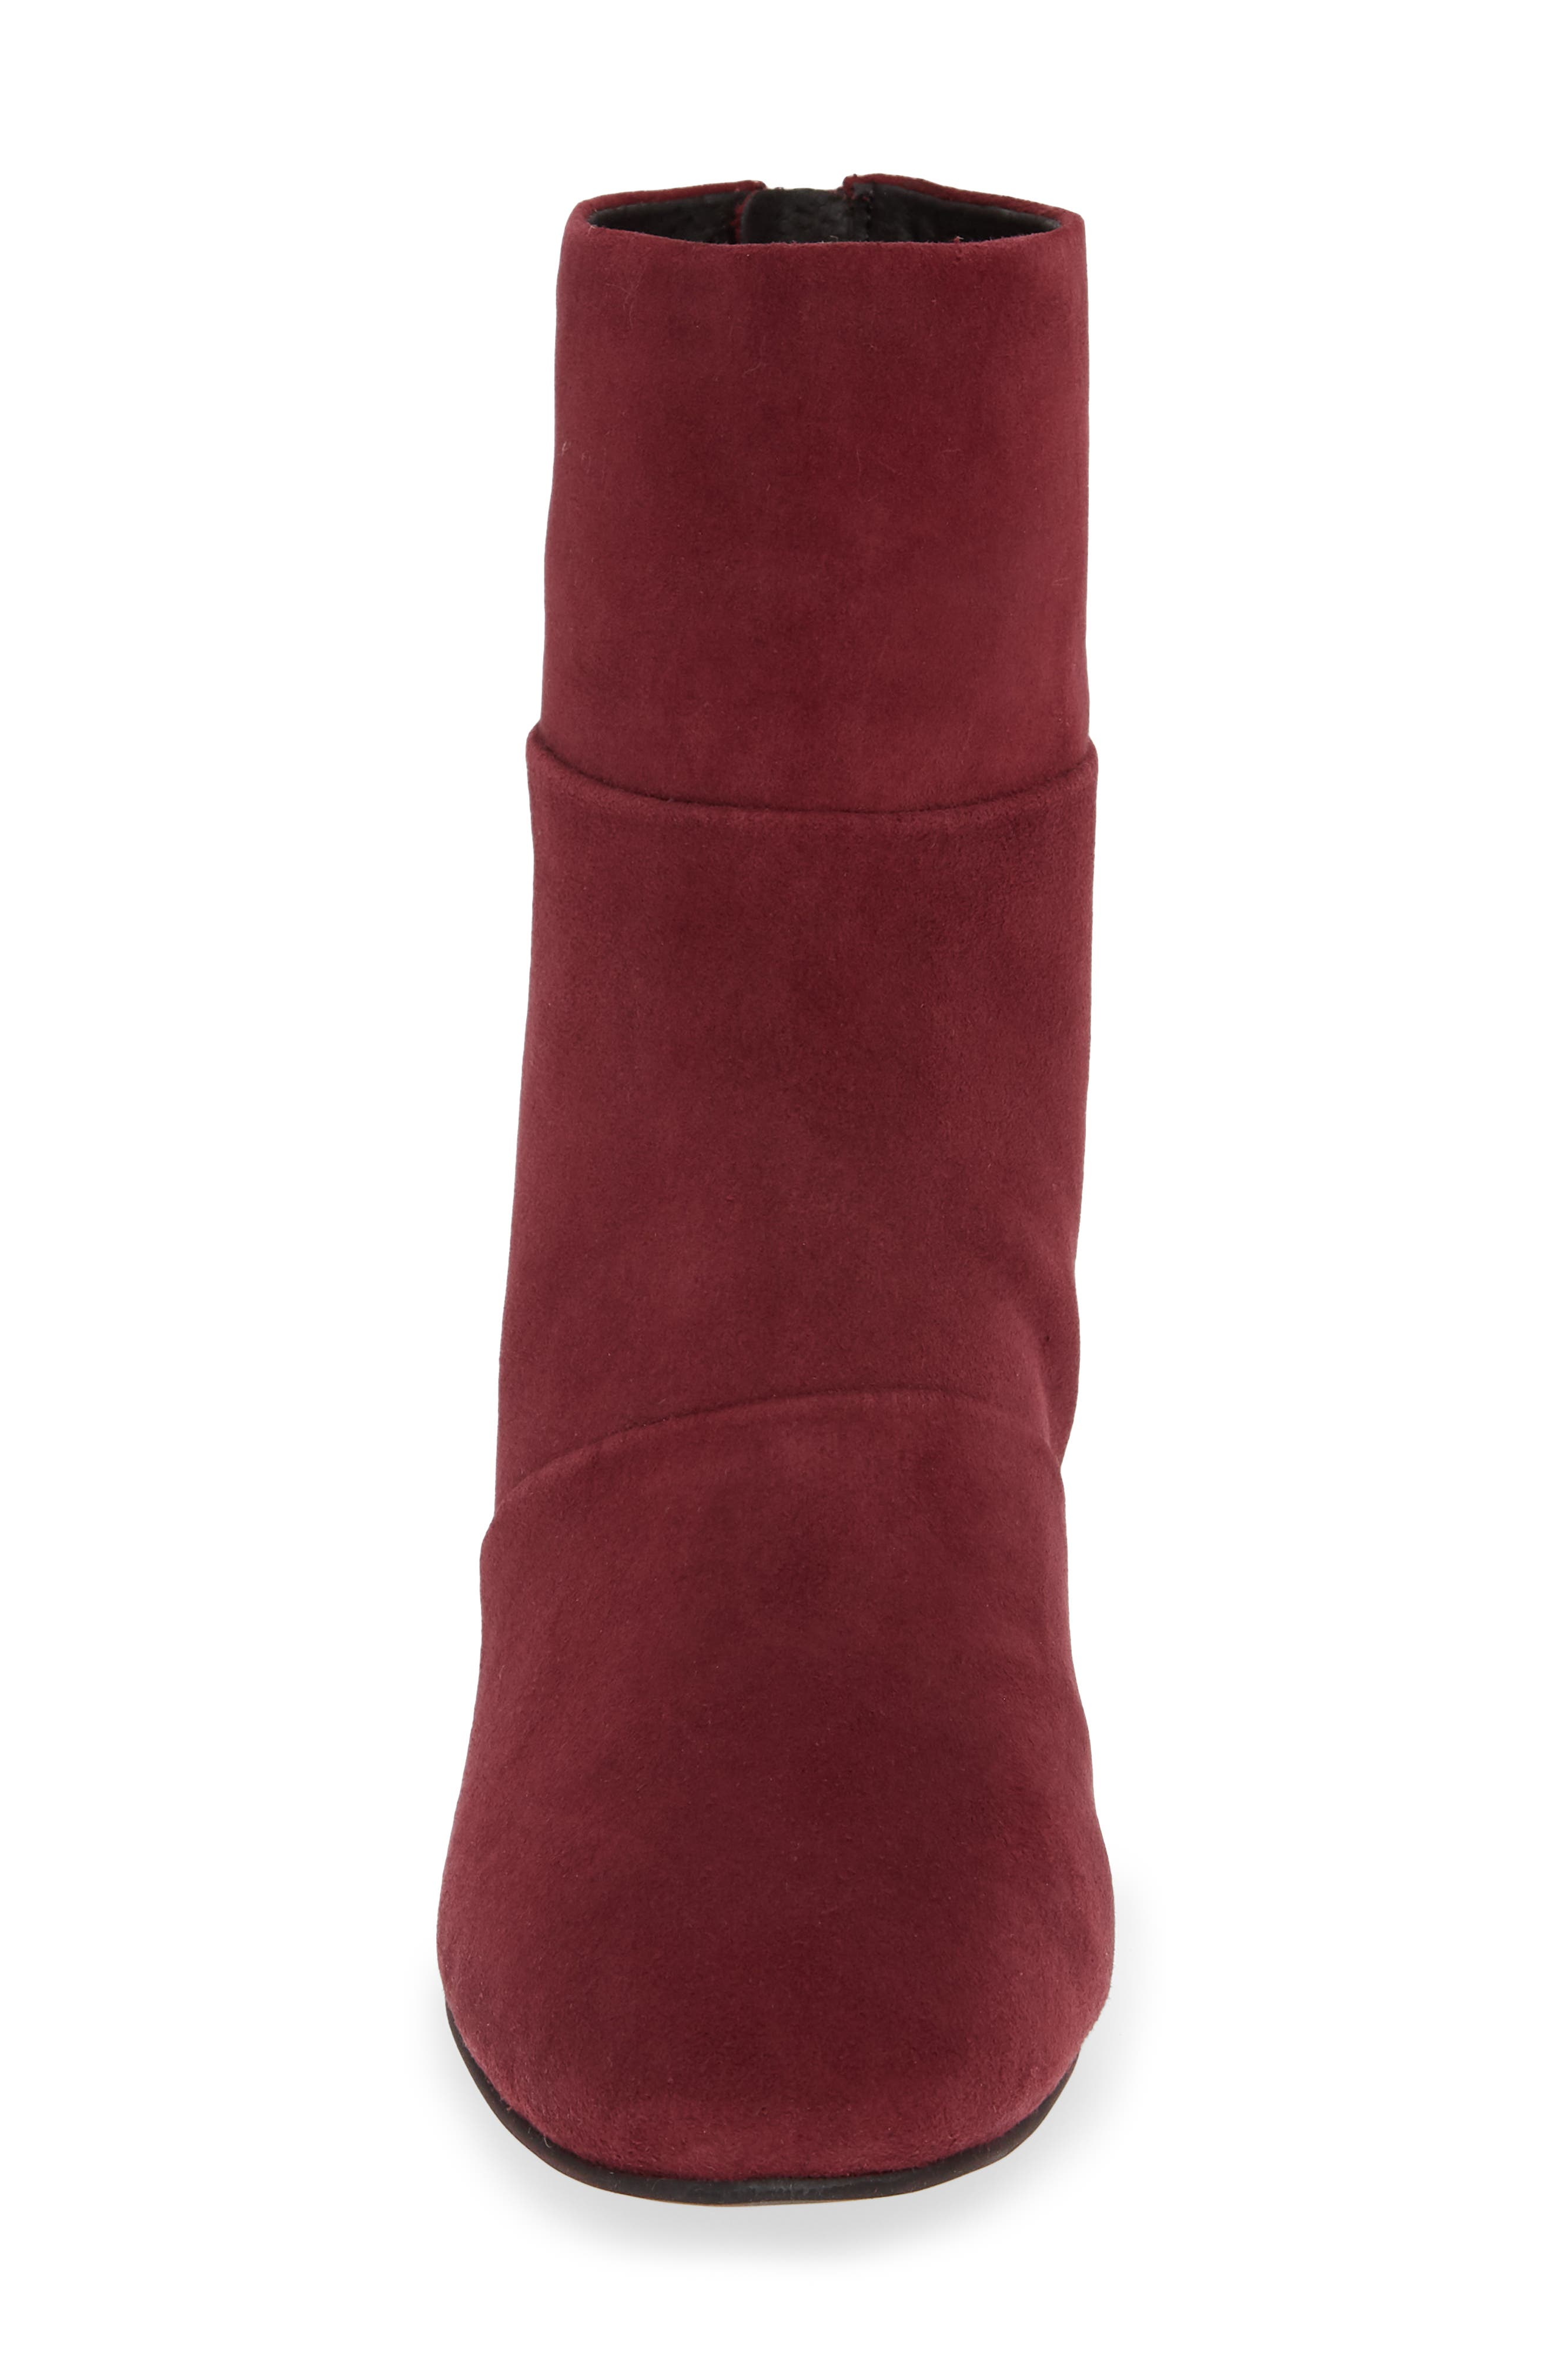 Eryc Bootie,                             Alternate thumbnail 4, color,                             WINE SUEDE